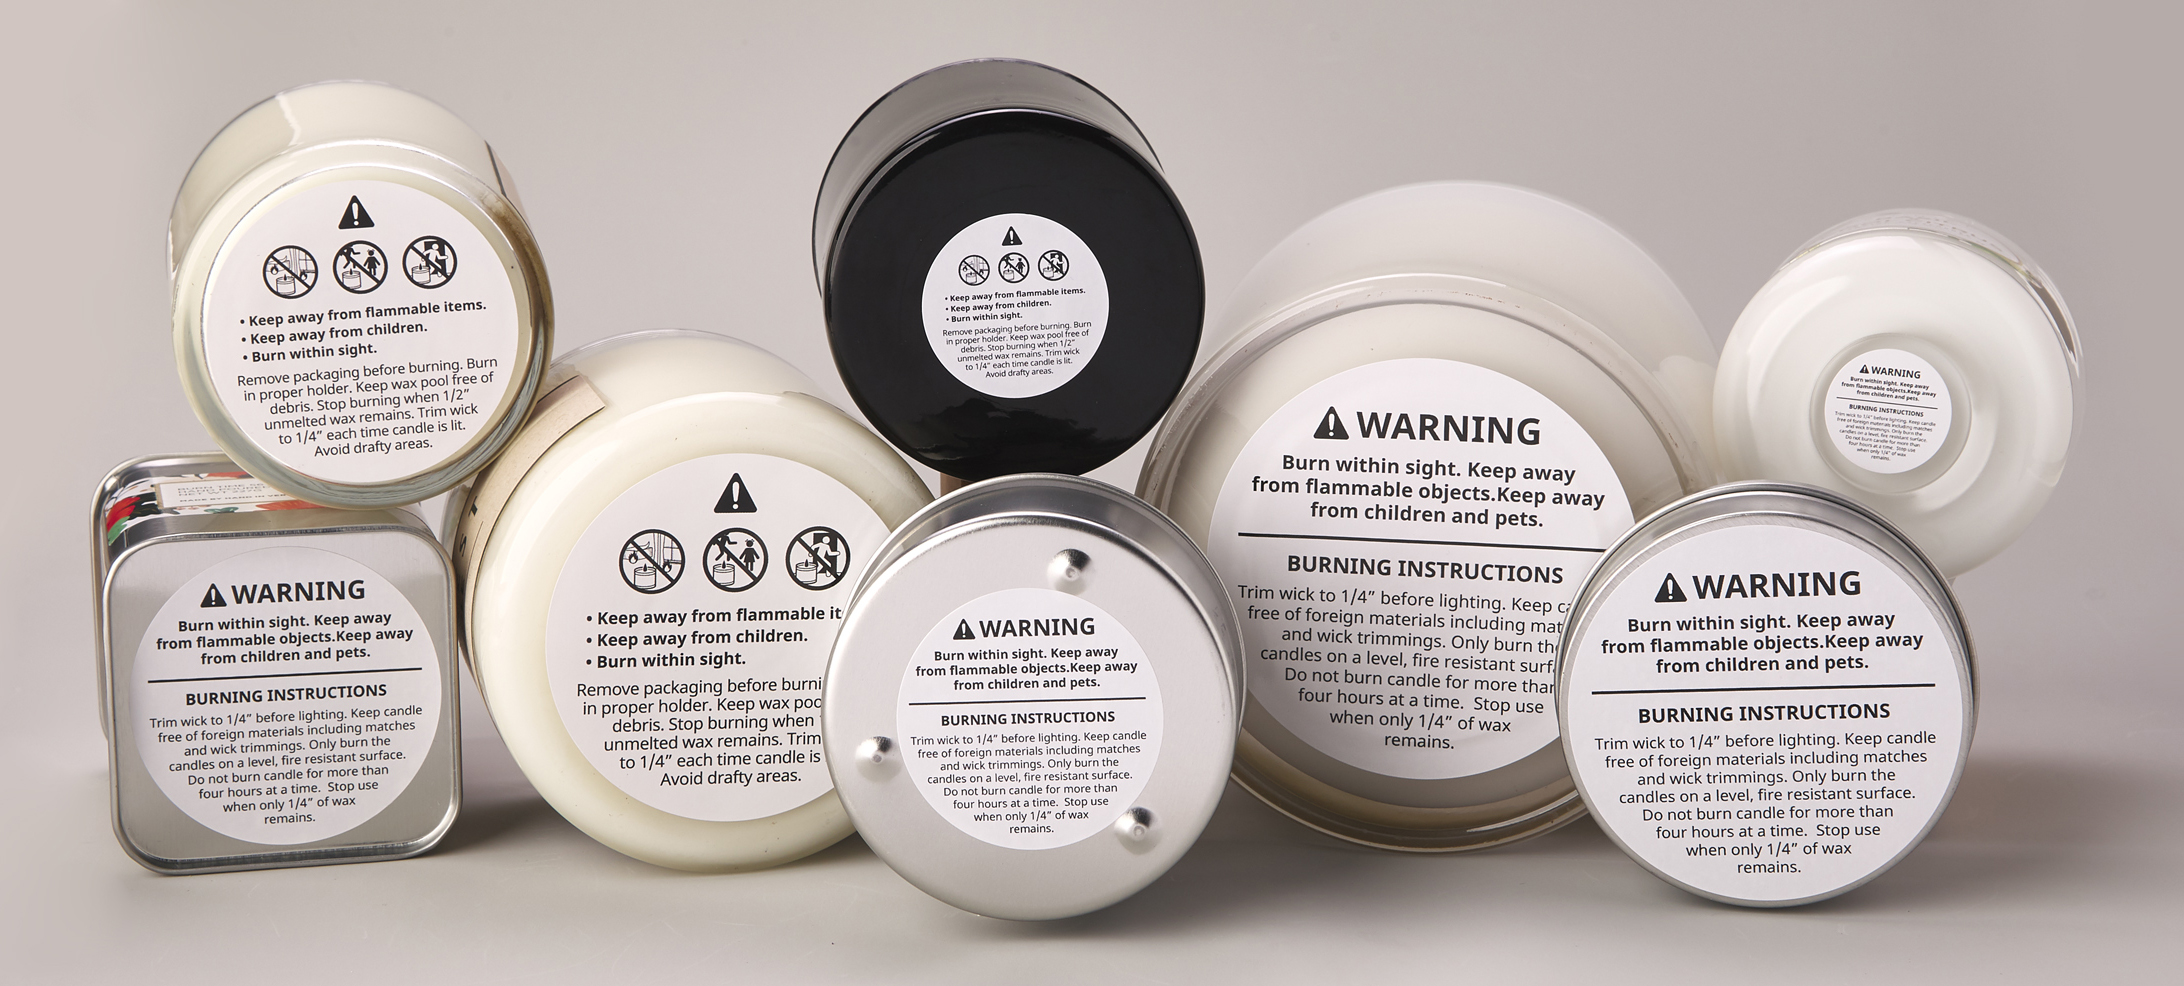 image about Free Printable Candle Warning Labels called Candle Caution Labels - Avery